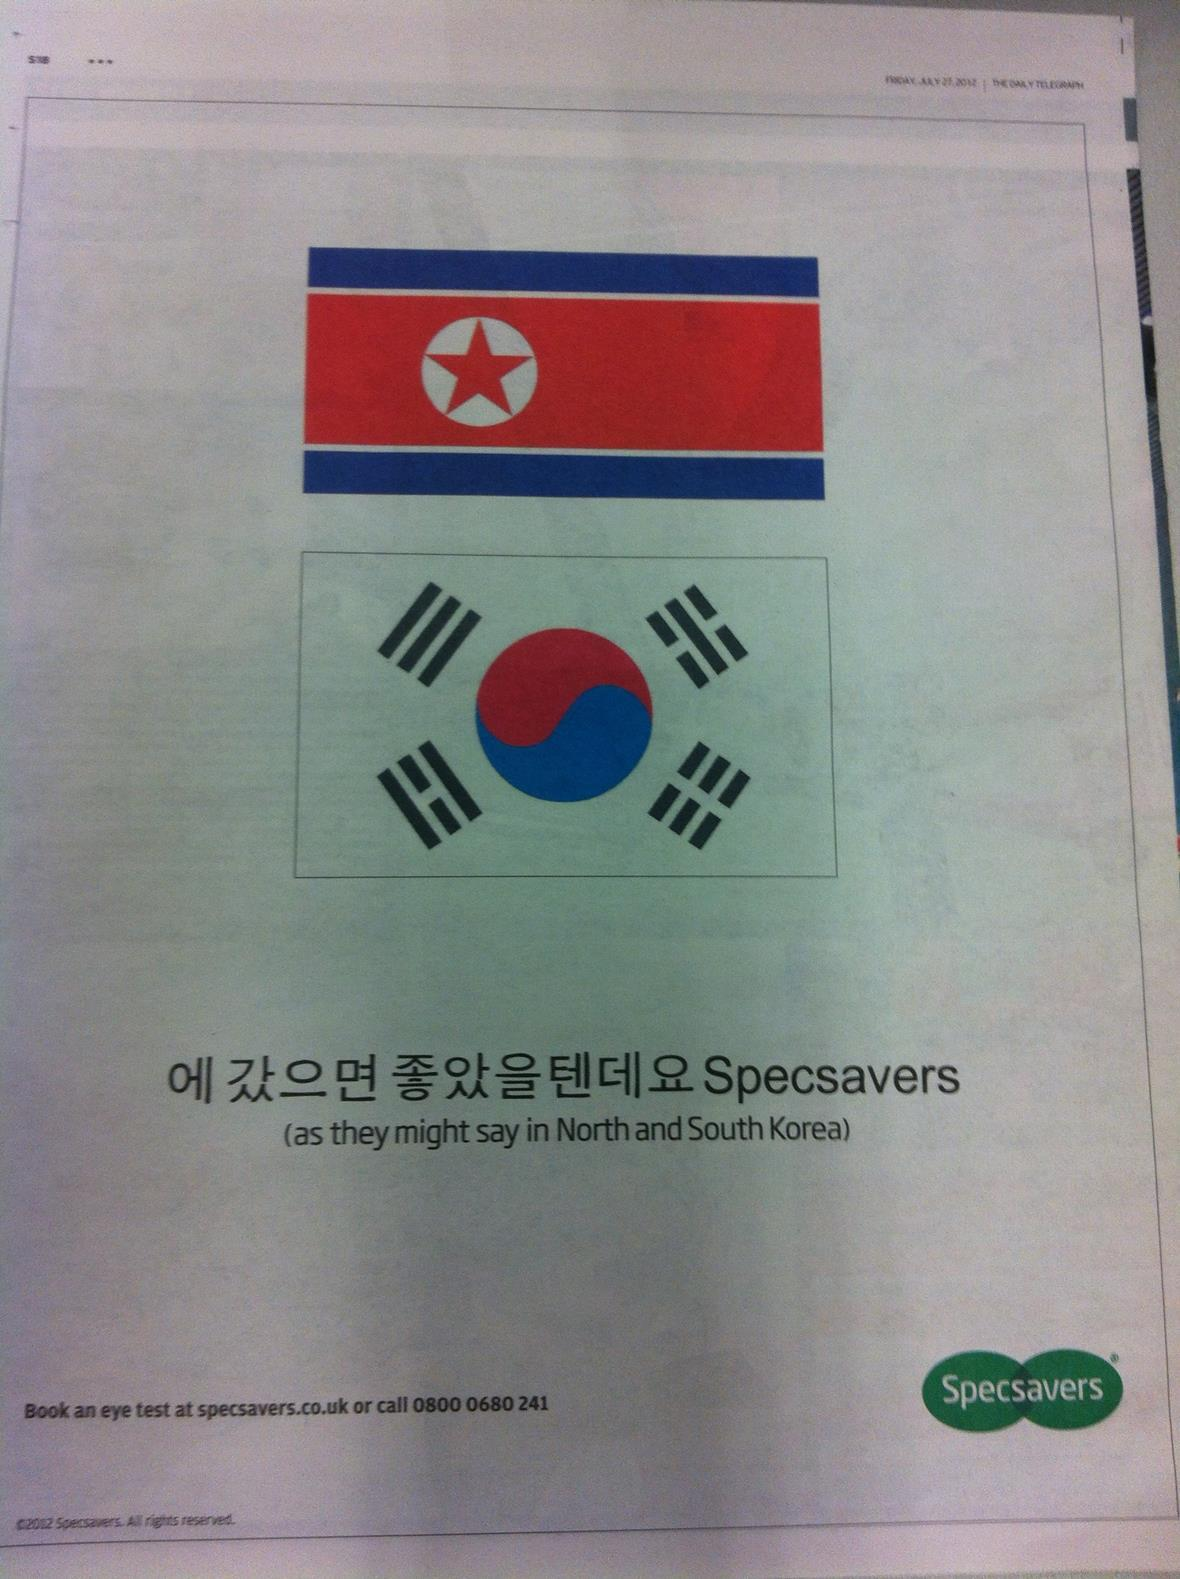 specsavers ad pokes fun at olympics korea flag gaffe news full screen specsavers has taken out advertising poking fun at the mistake which saw a south korean flag